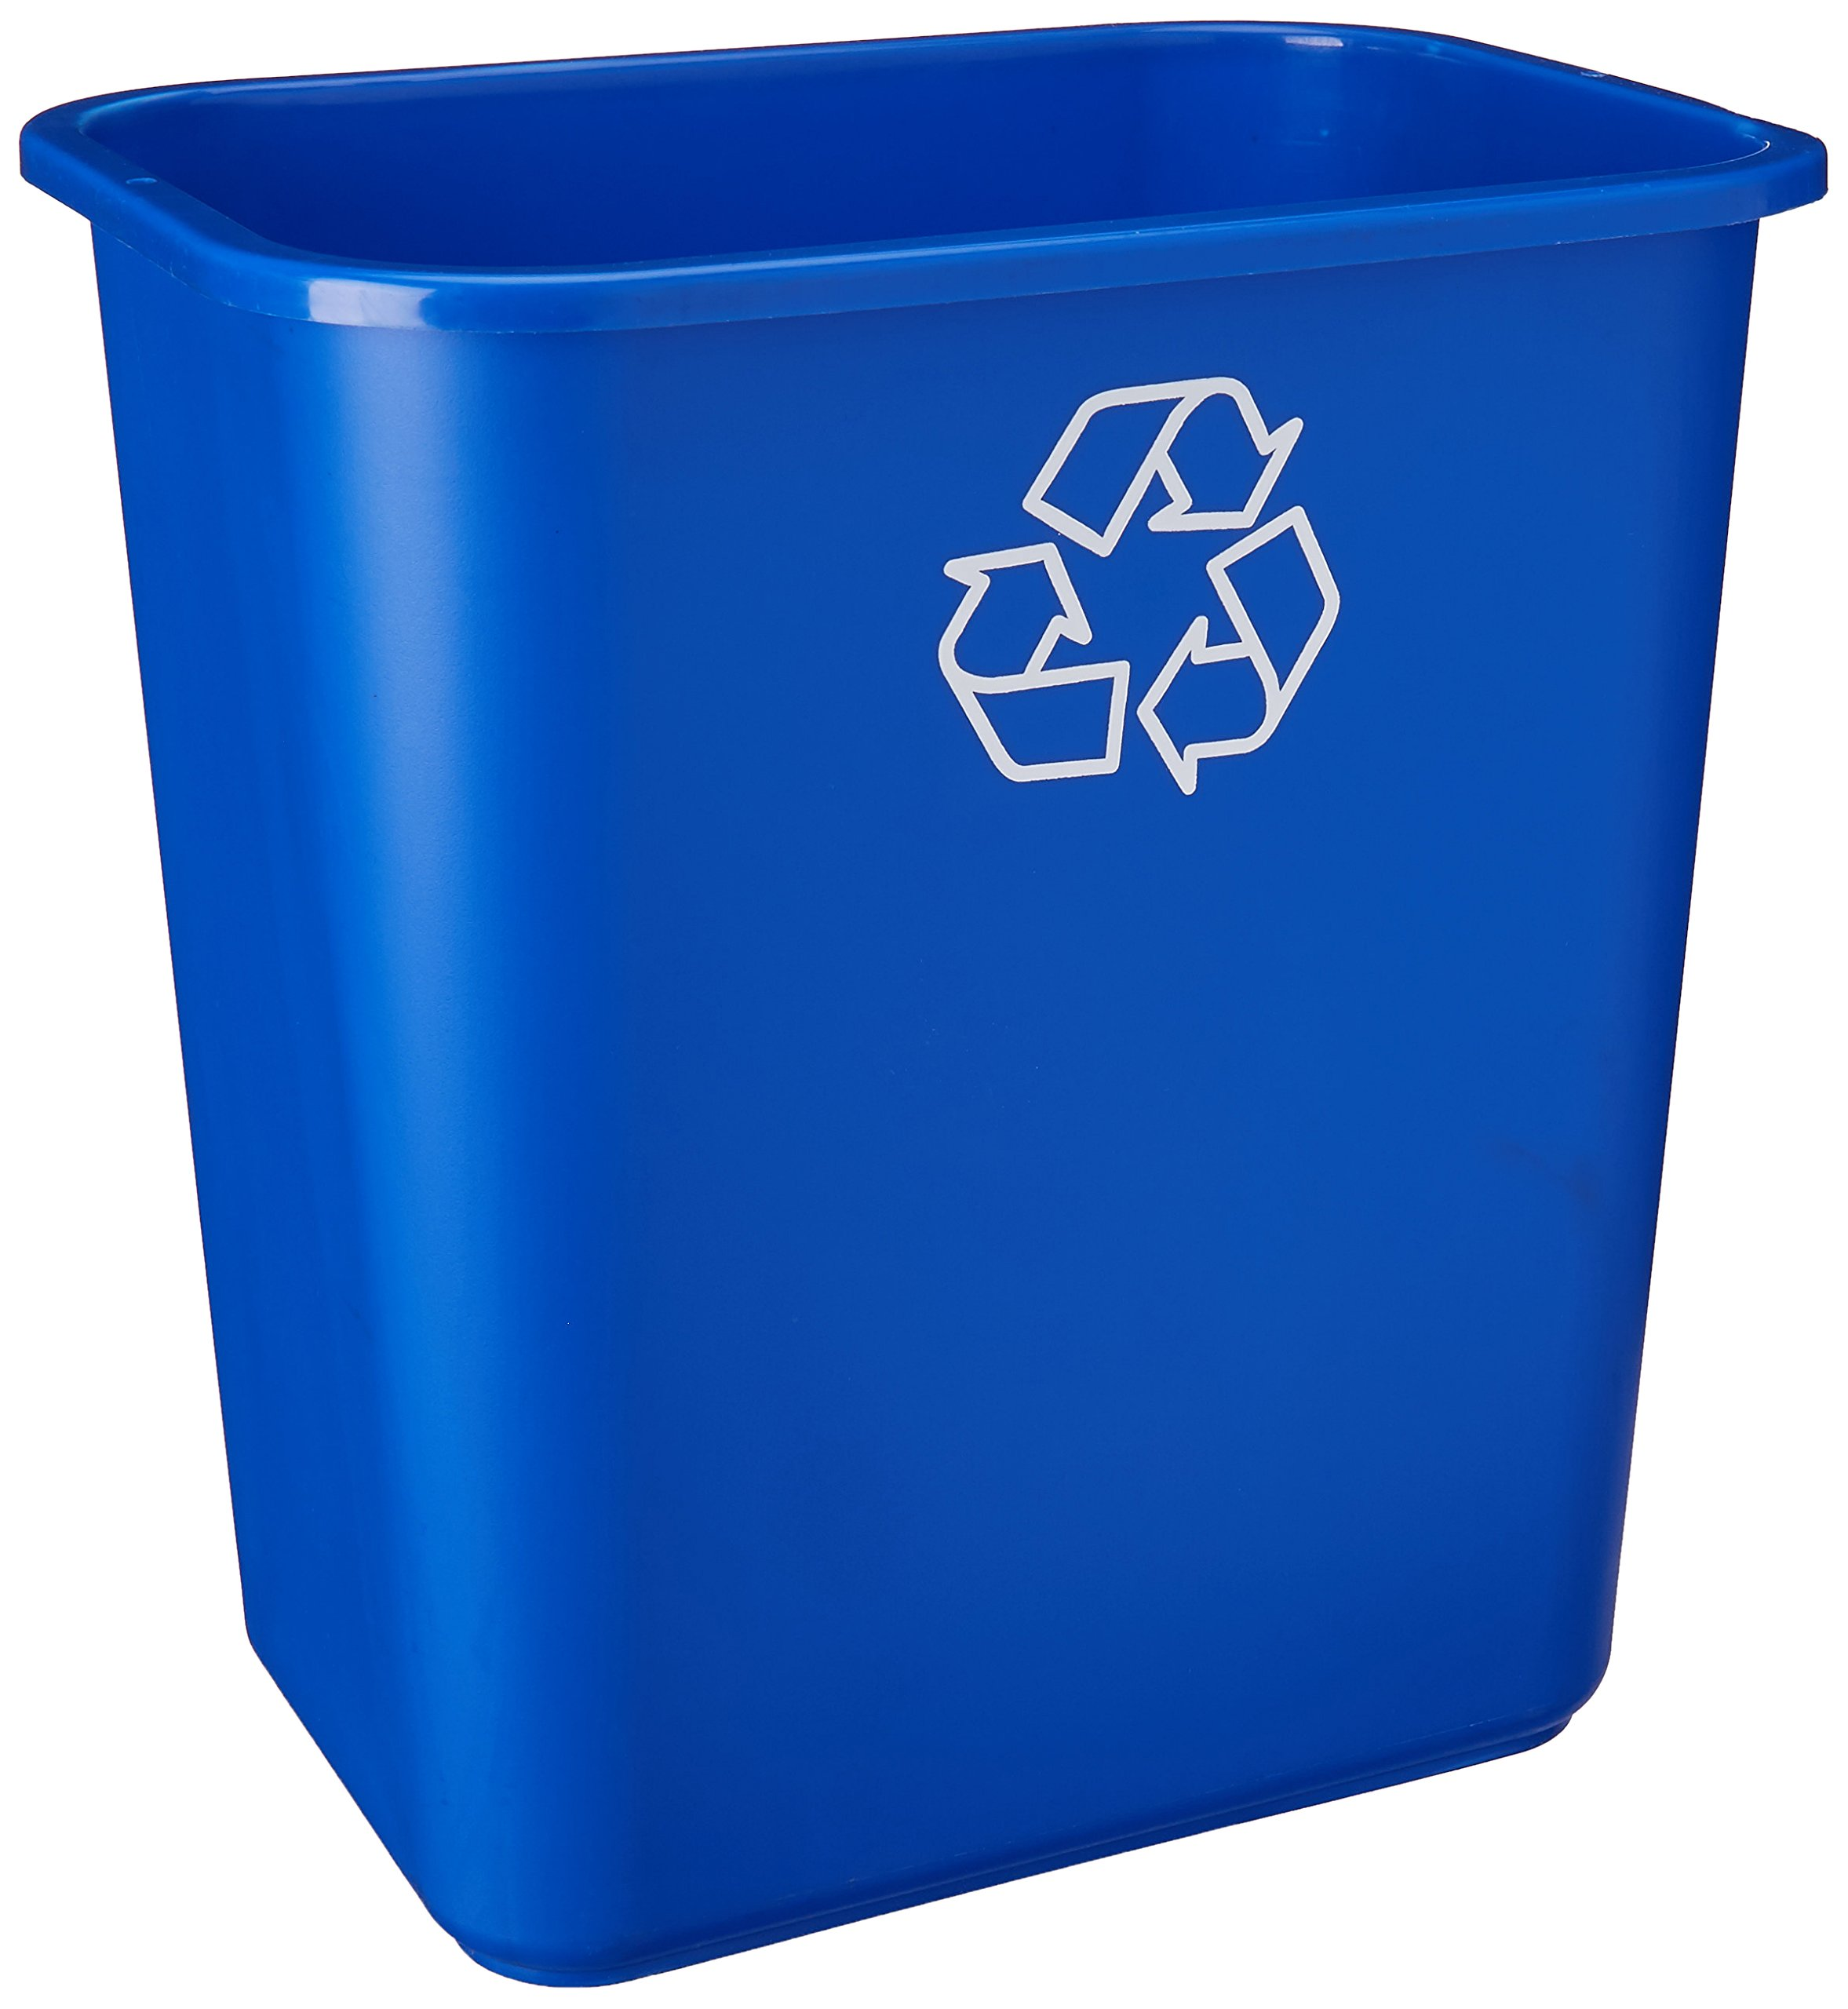 United Solutions EcoSense WB0084 Blue Twenty Eight Quart Recycling Wastebasket - 28QT Recycling Bin in Blue by United Solutions